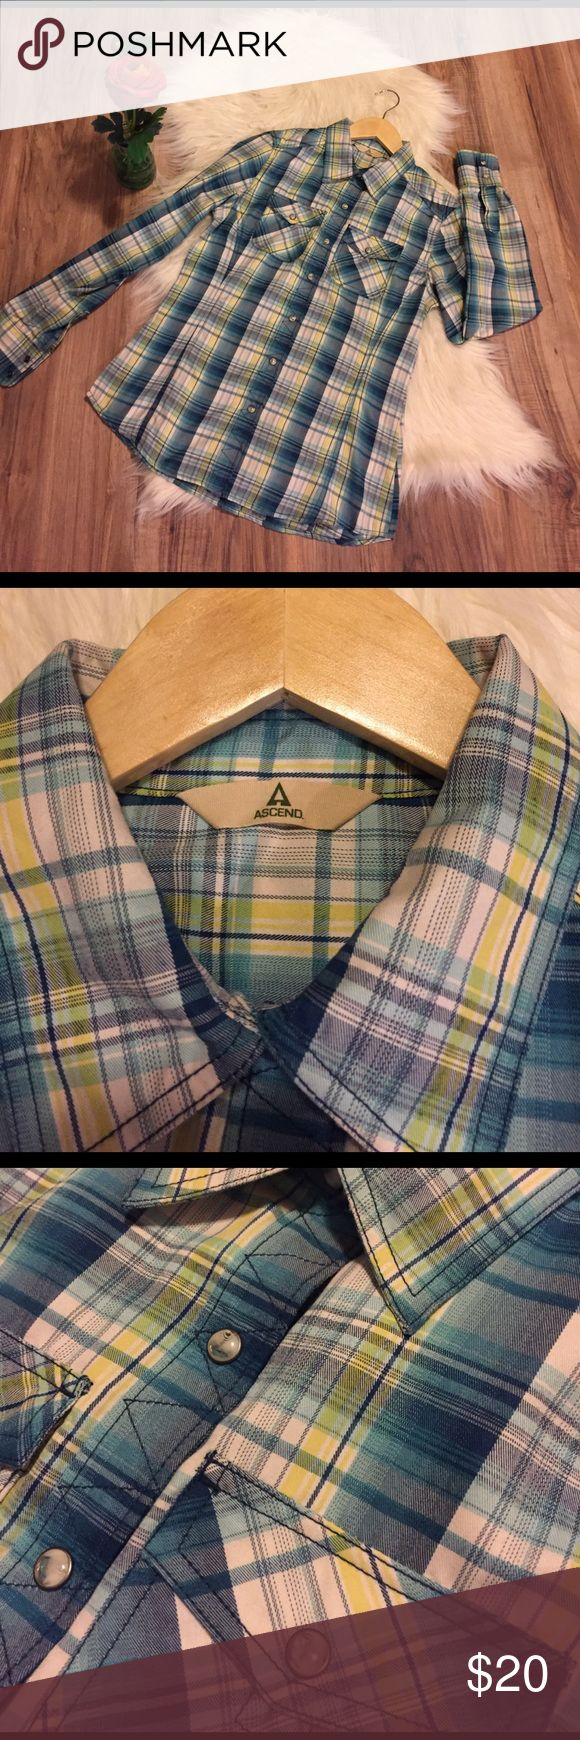 Blue & Green Plaid Shirt Ascend size small. Pearl snap Button Down shirt. Never worn and smoke free home Ascend Tops Button Down Shirts